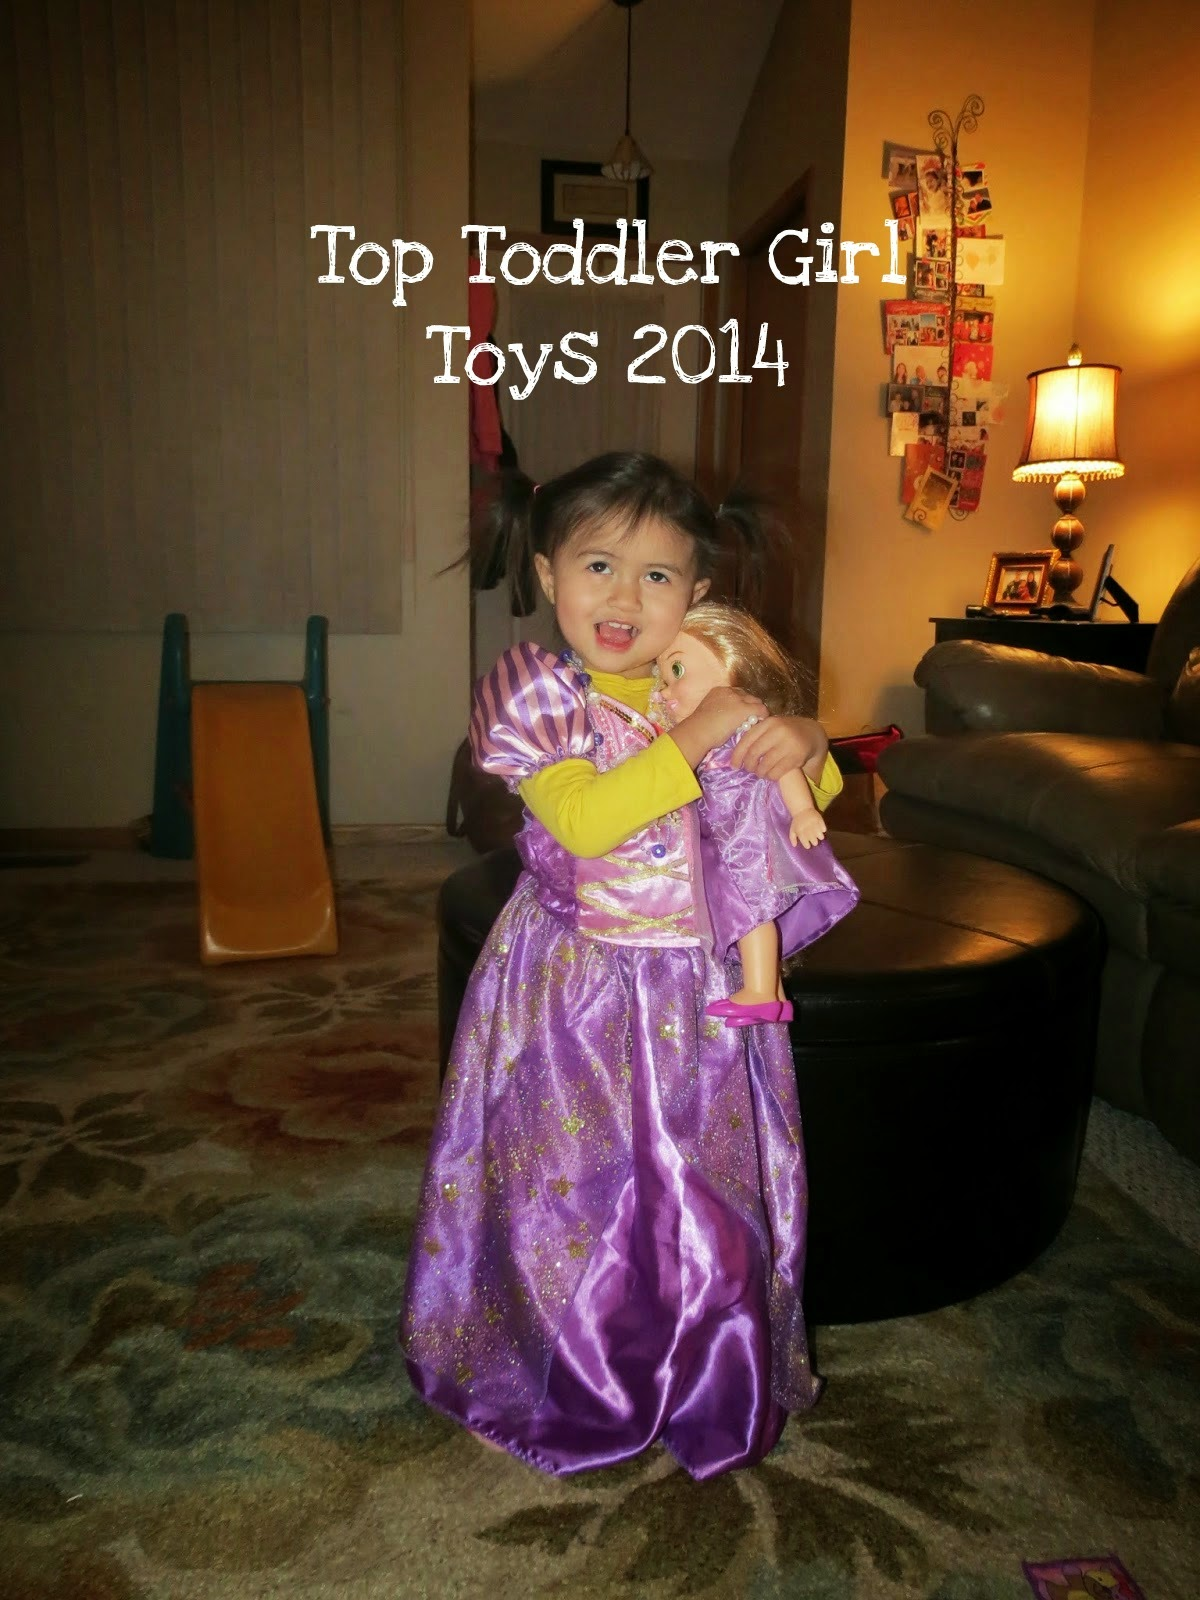 Toddler Girl Toys 2014 : The wagner bulletin top toddler girl toys